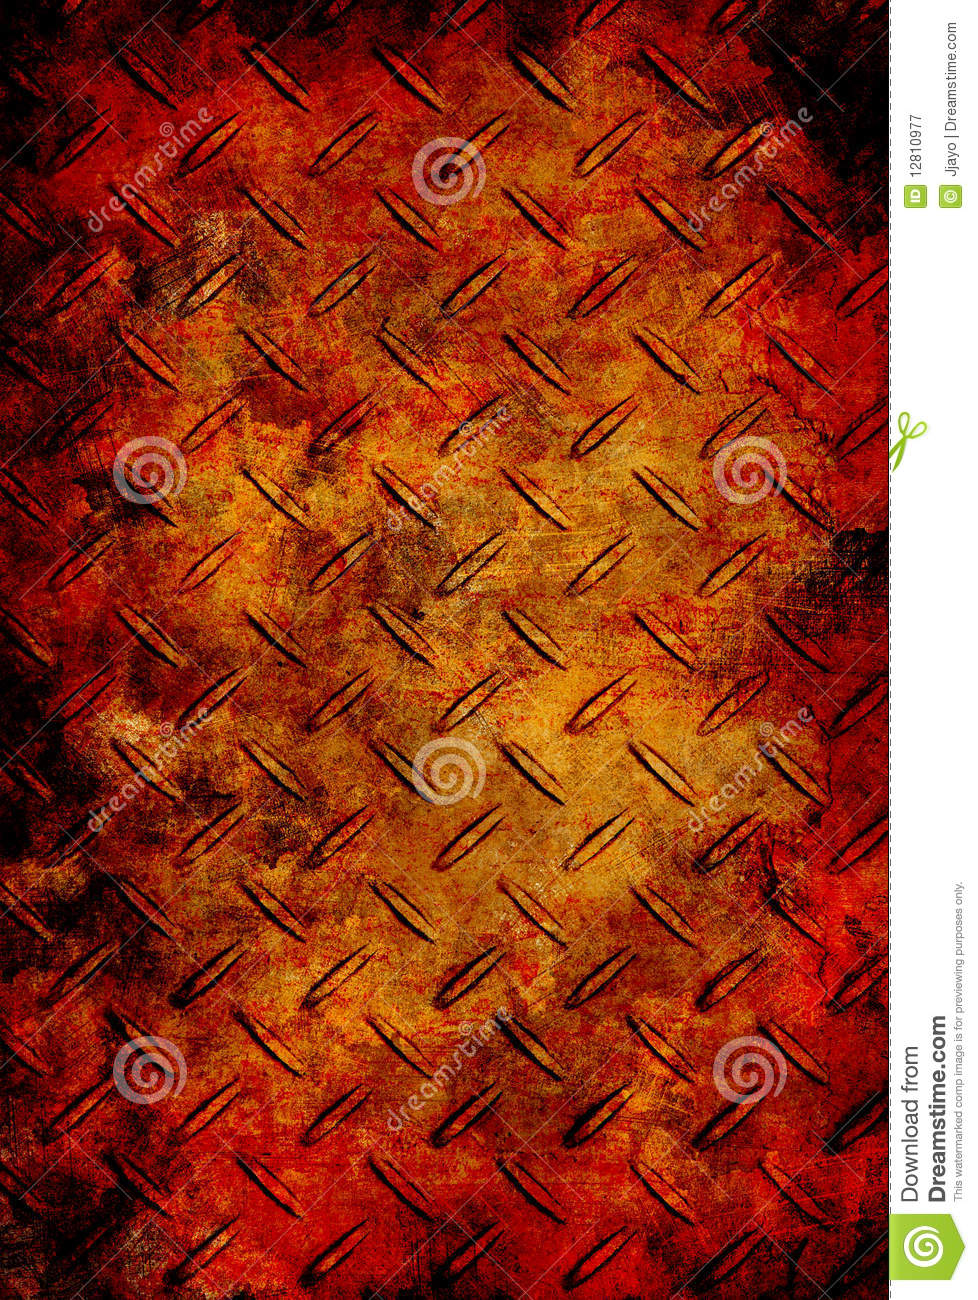 Abstract Grunge Rusty Metal Background Stock Image - Image ...